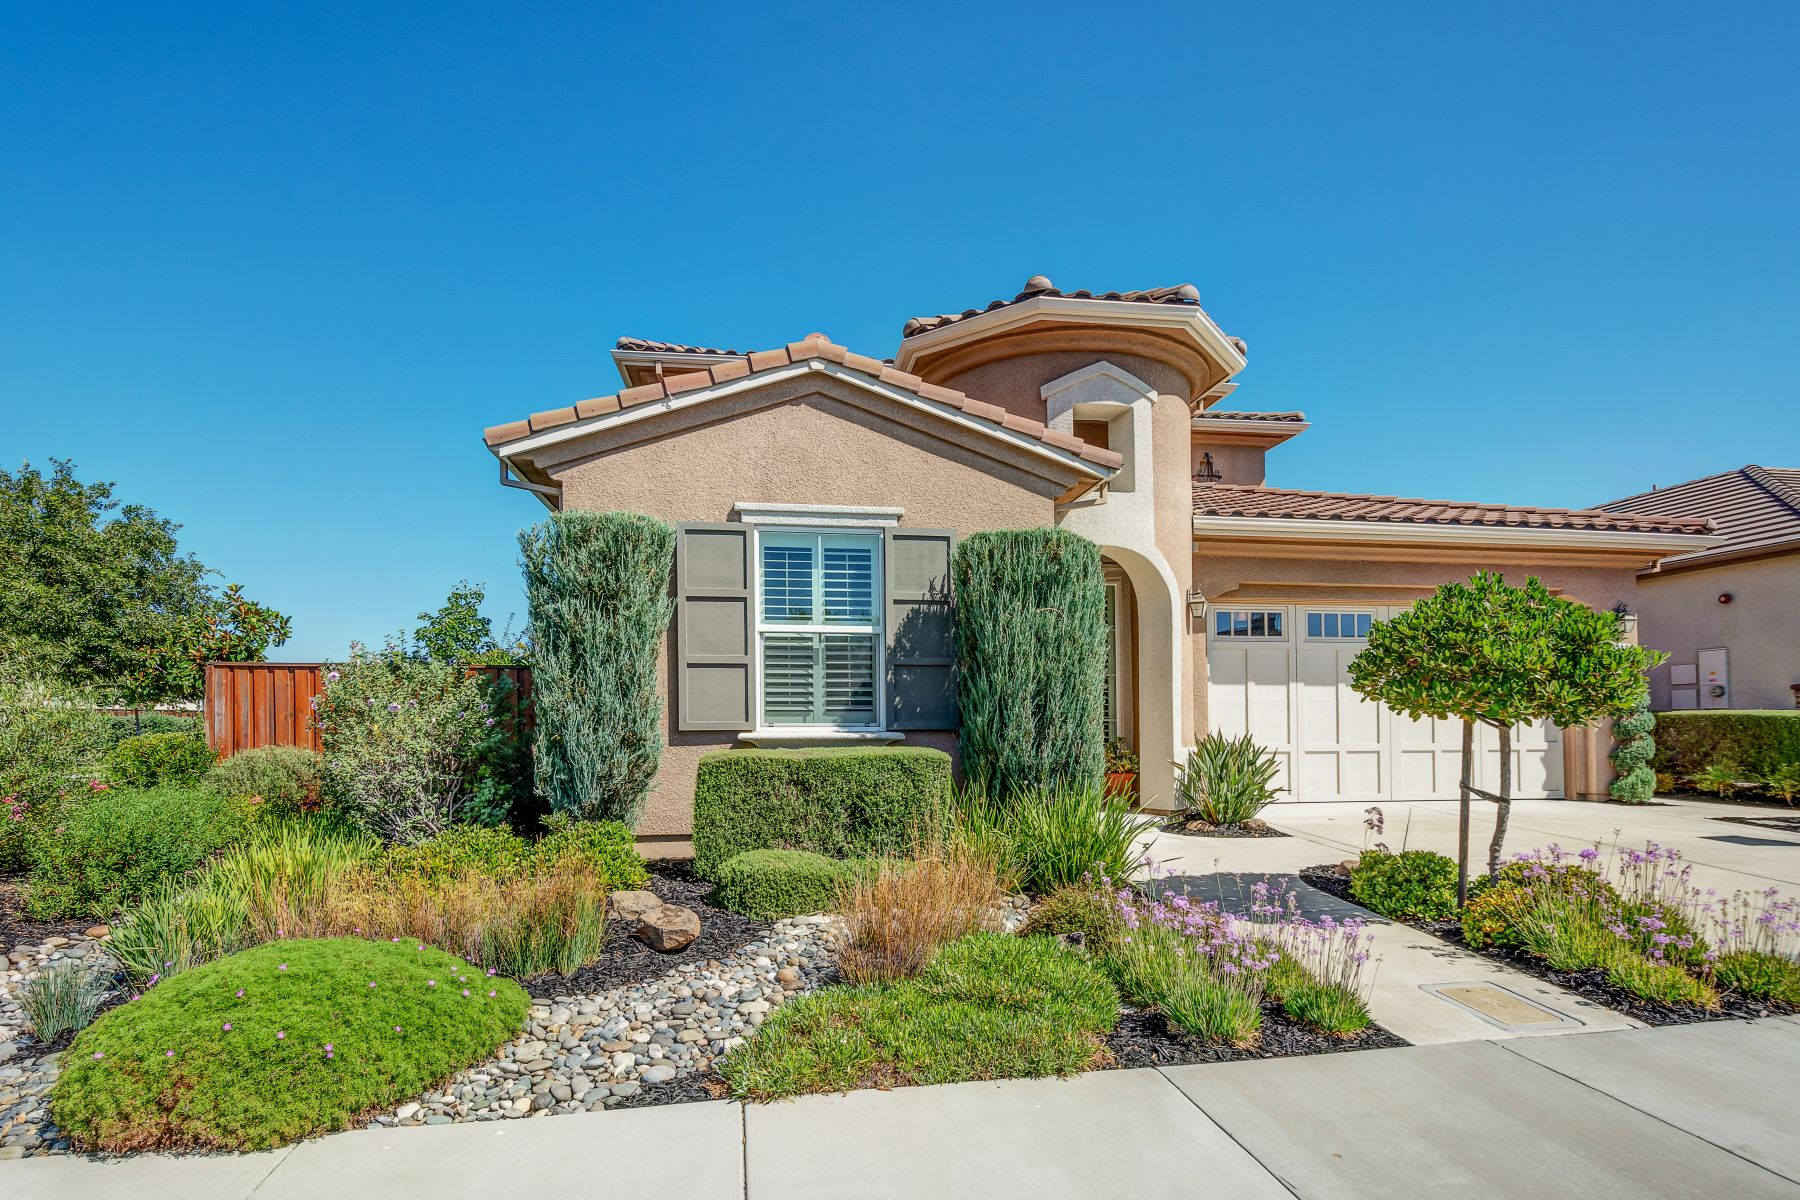 Single Family Homes for Sale at 3300 Newport Street, Pleasanton, CA 94566 3300 Newport Street Pleasanton, California 94566 United States